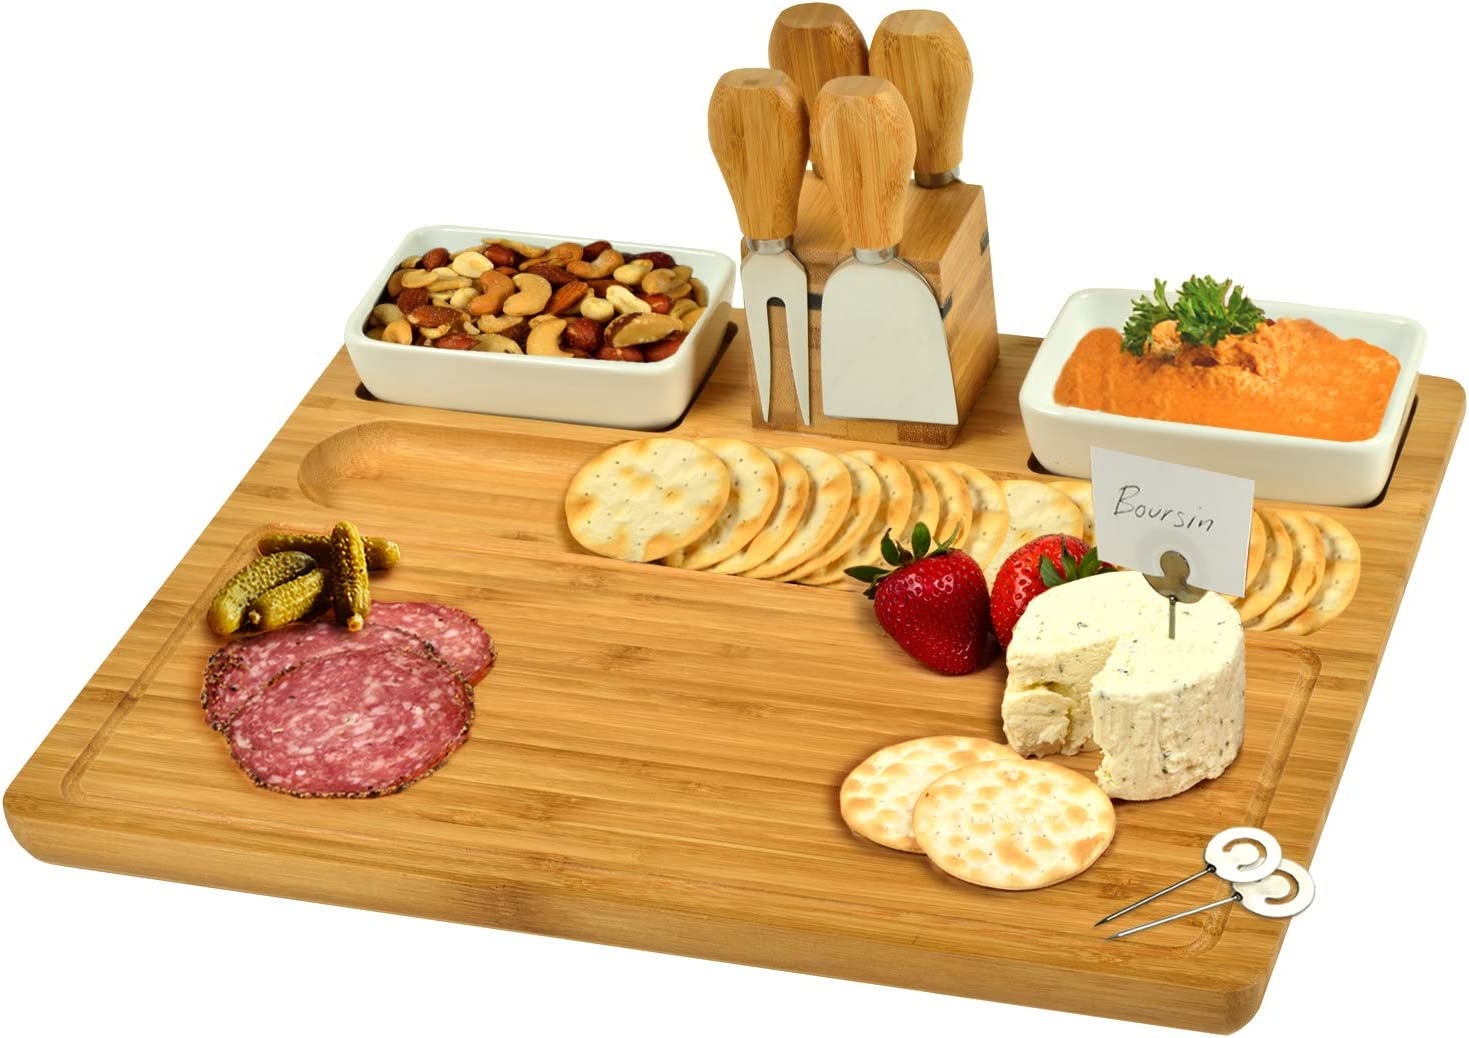 Selling and selling Excellence Picnic at Ascot Large Bamboo wi Charcuterie Cheese Platter Board